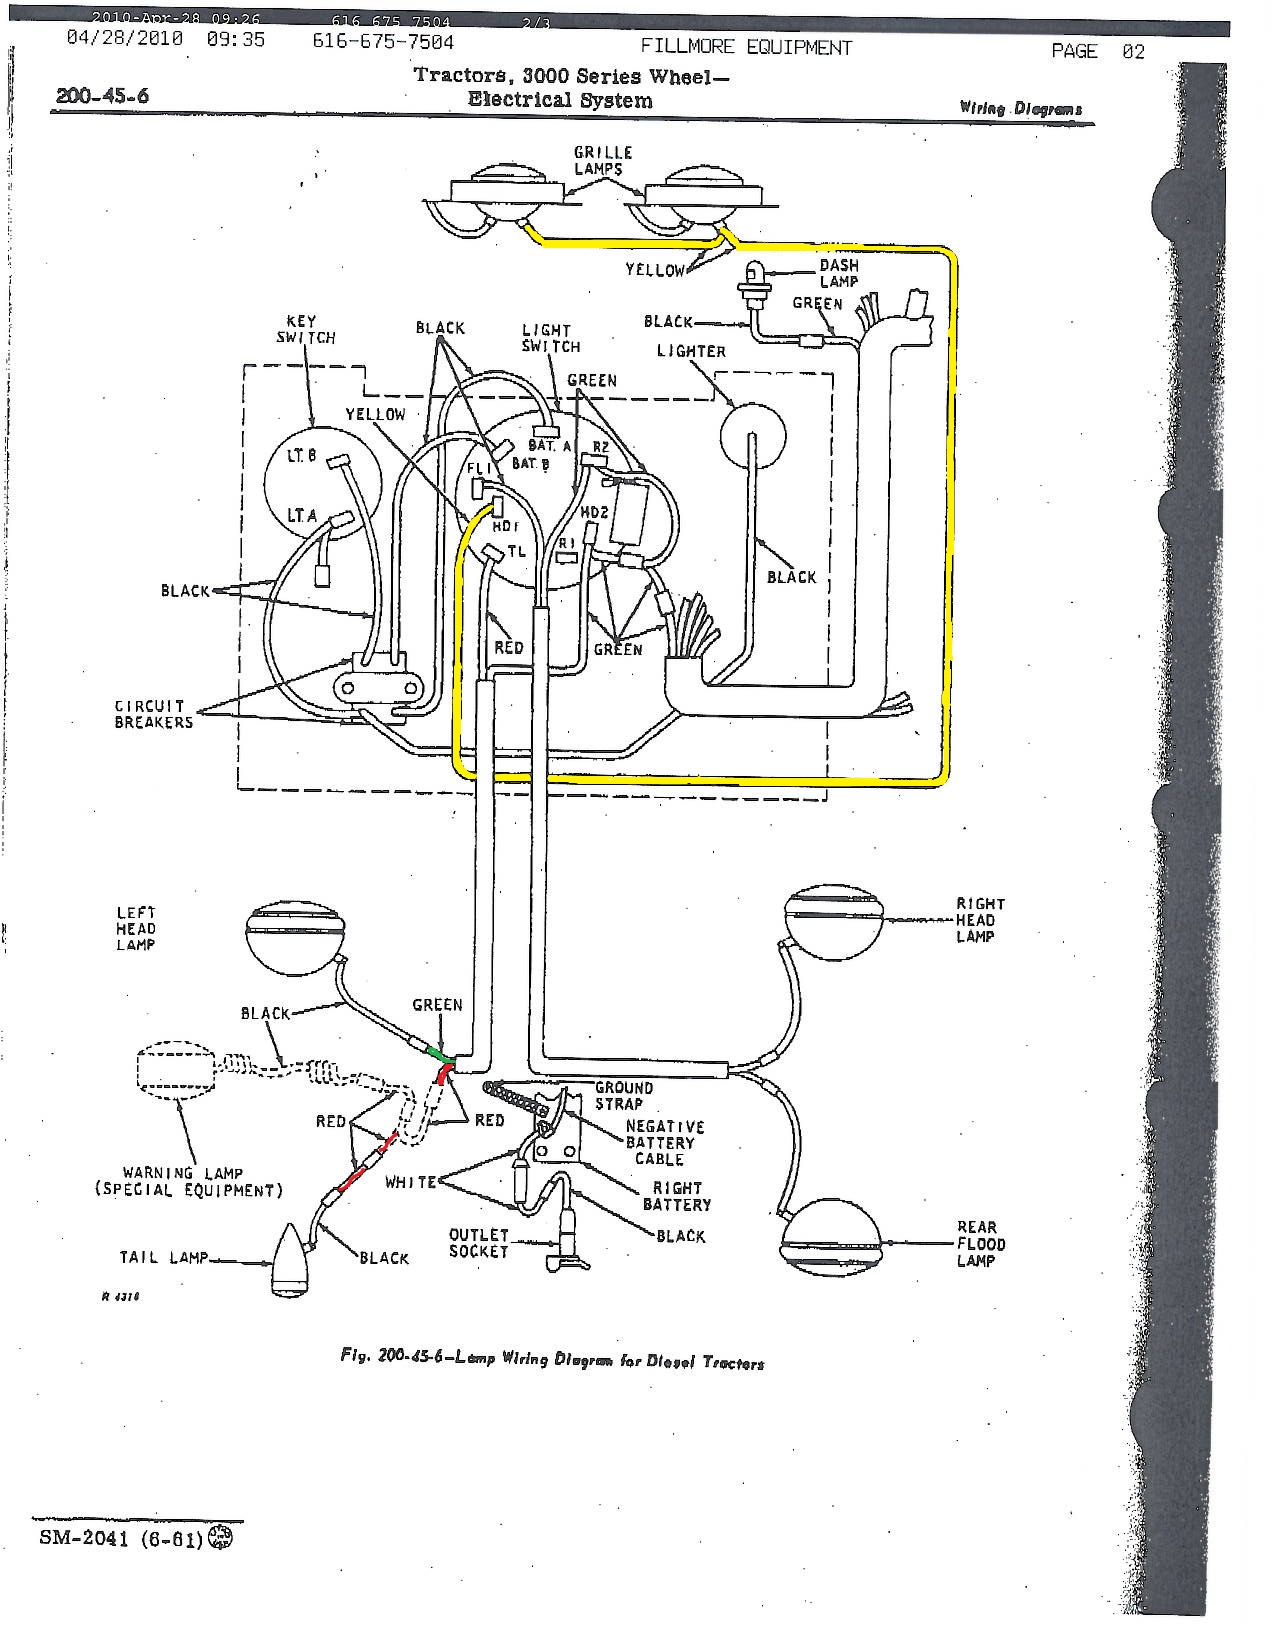 7D96B John Deere 2010 Wiring Diagram For A Light Switch ... on john deere 2020 front axle diagram, john deere 1010 tractor manuals, john deere 310g parts diagram, john deere 3010 parts diagram,